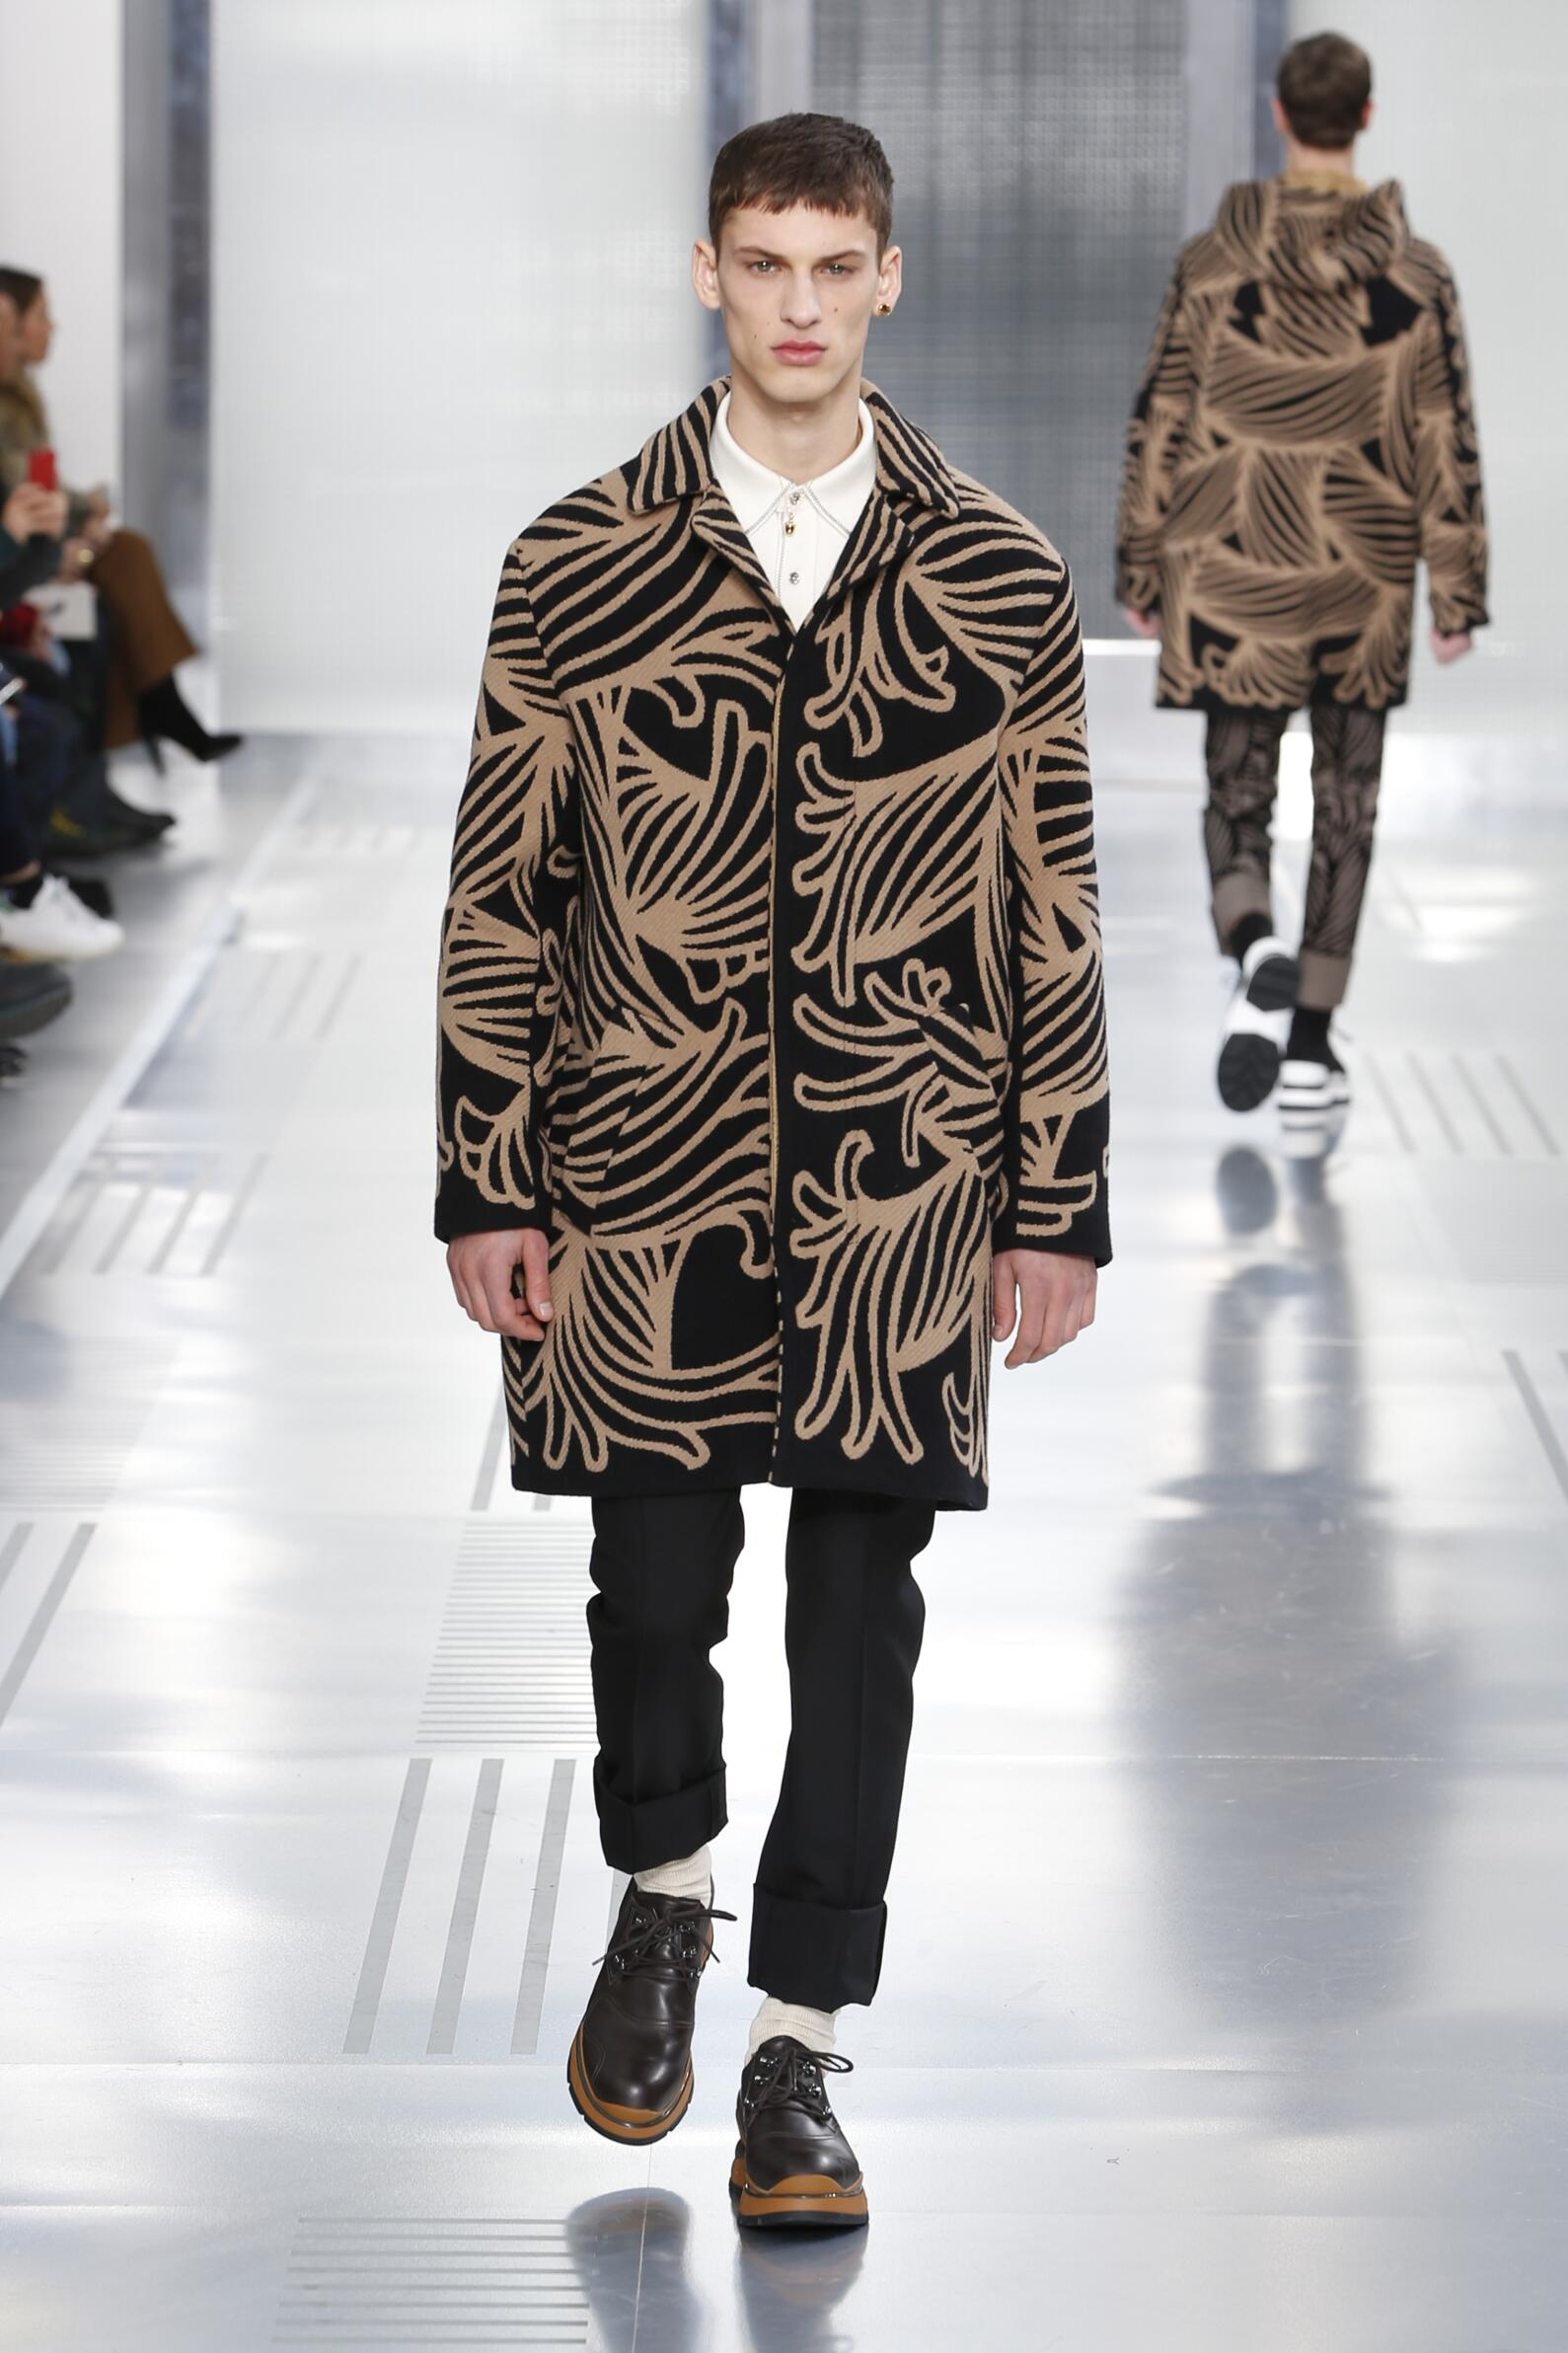 Catwalk Louis Vuitton Fall Winter 2015 16 Men's Collection Paris Fashion Week